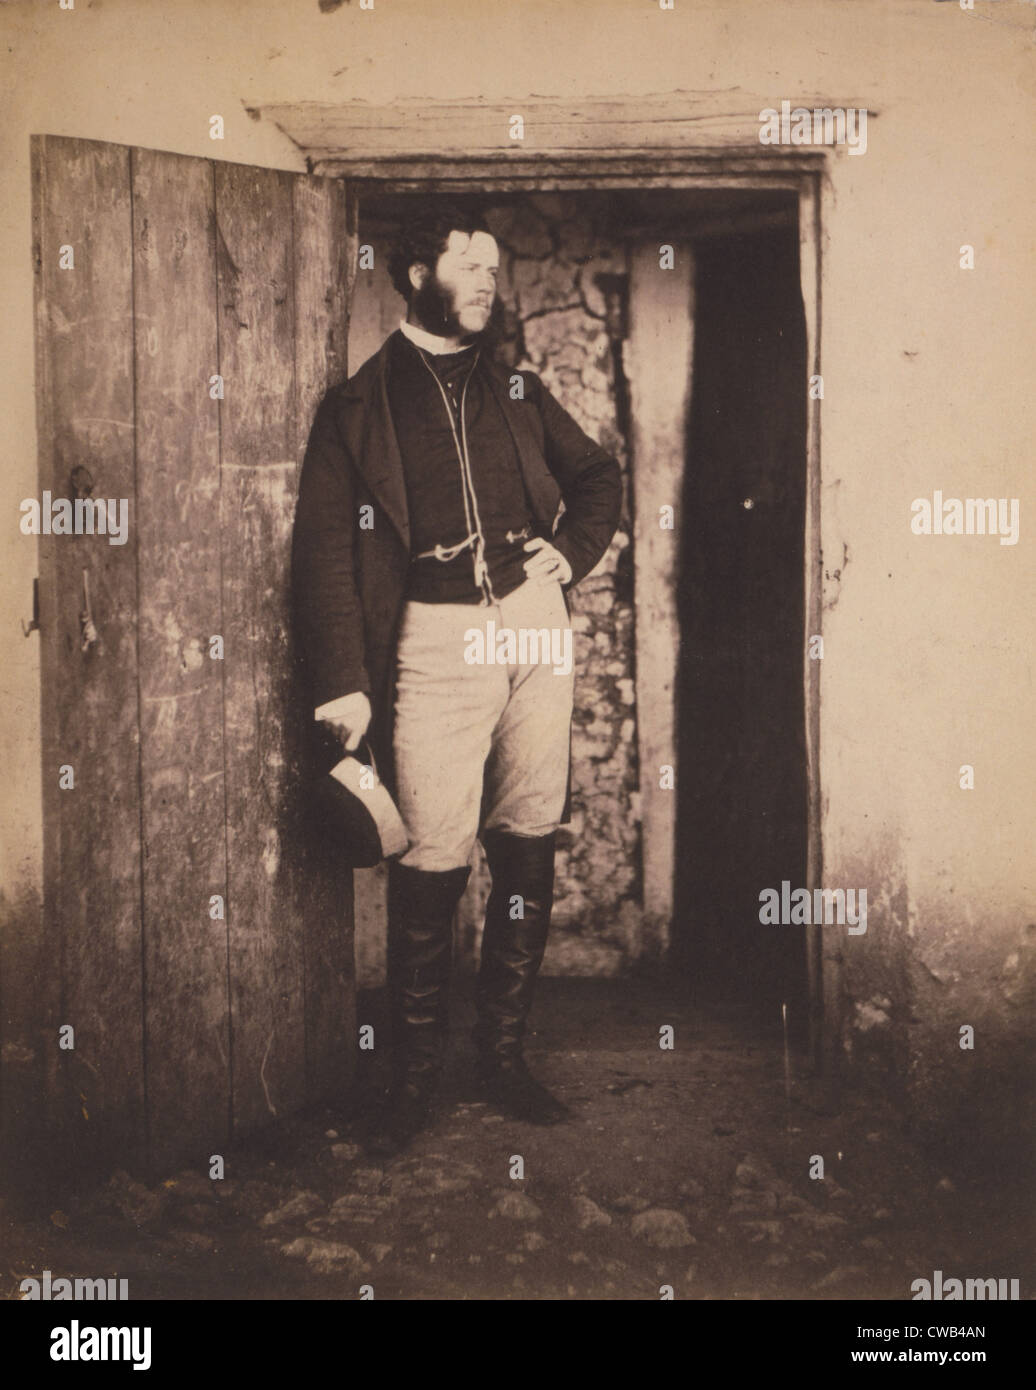 The Crimean War, portrait of Mr. Angel, postmaster, photograph by Roger Fenton, 1855. - Stock Image